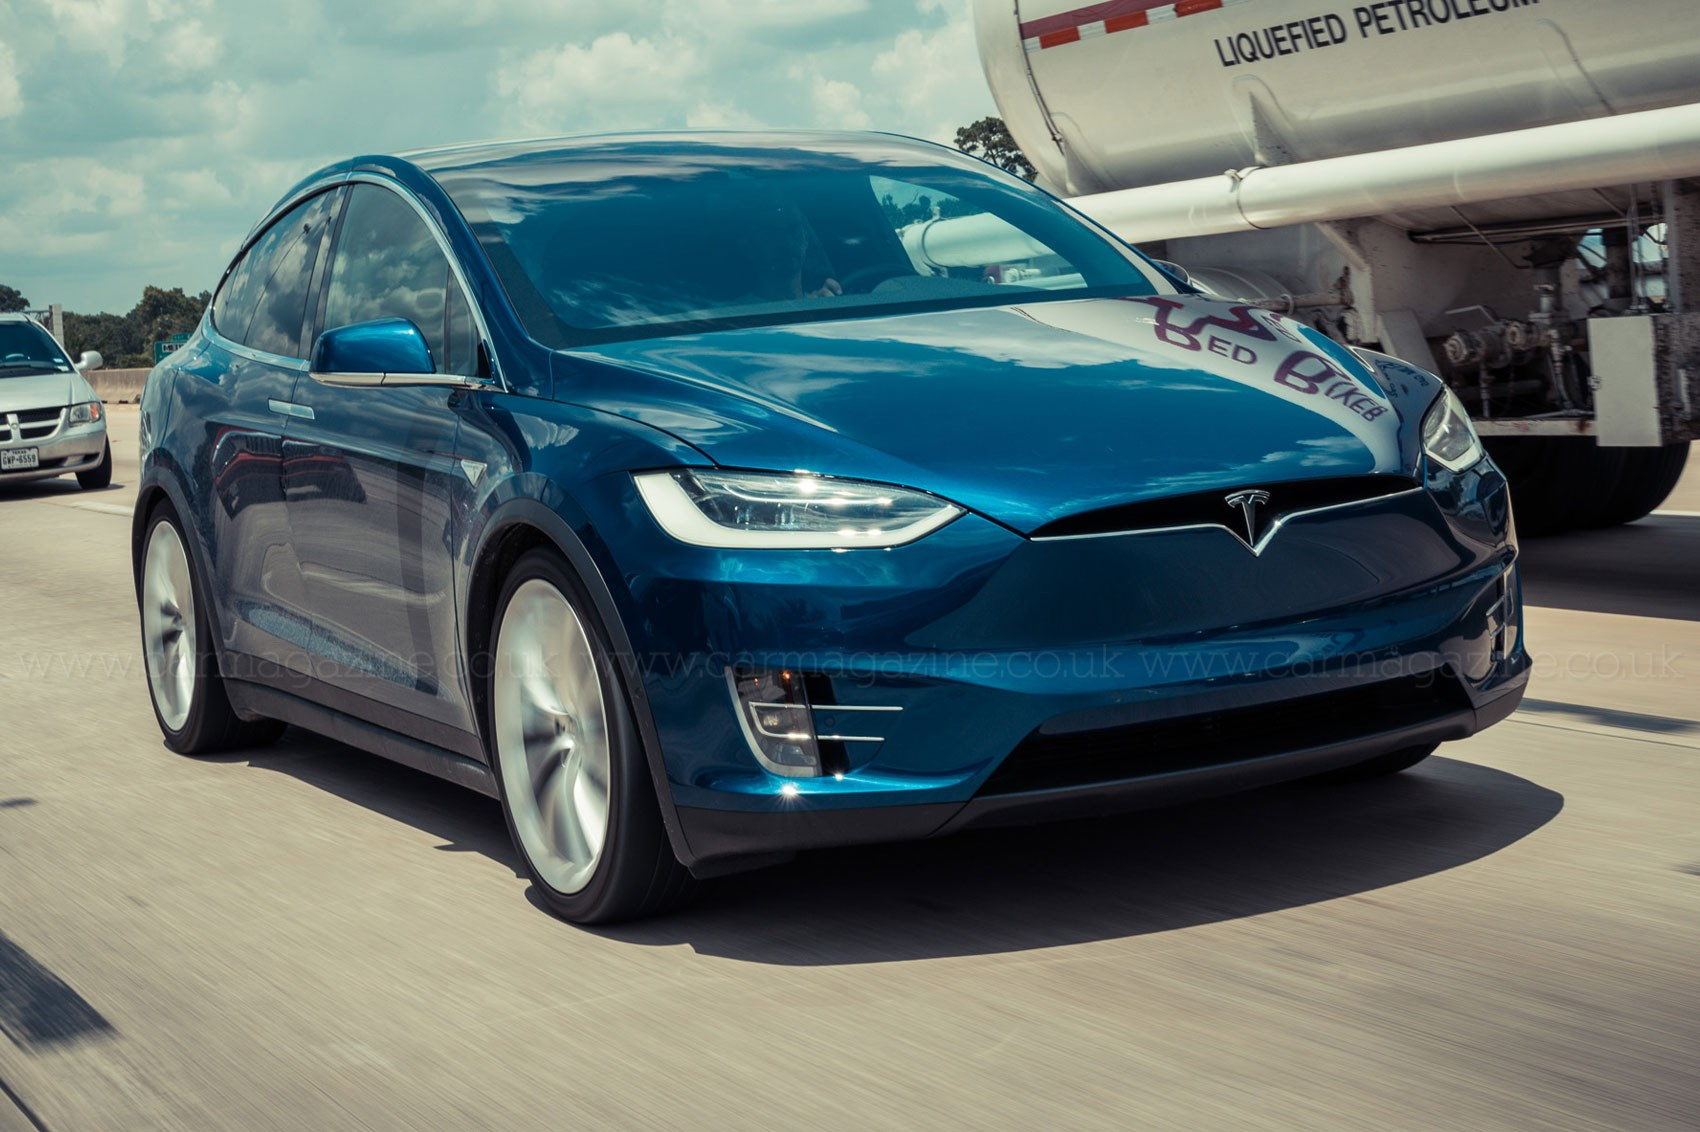 Tesla vs Texas a 700 mile road trip in a new Model X